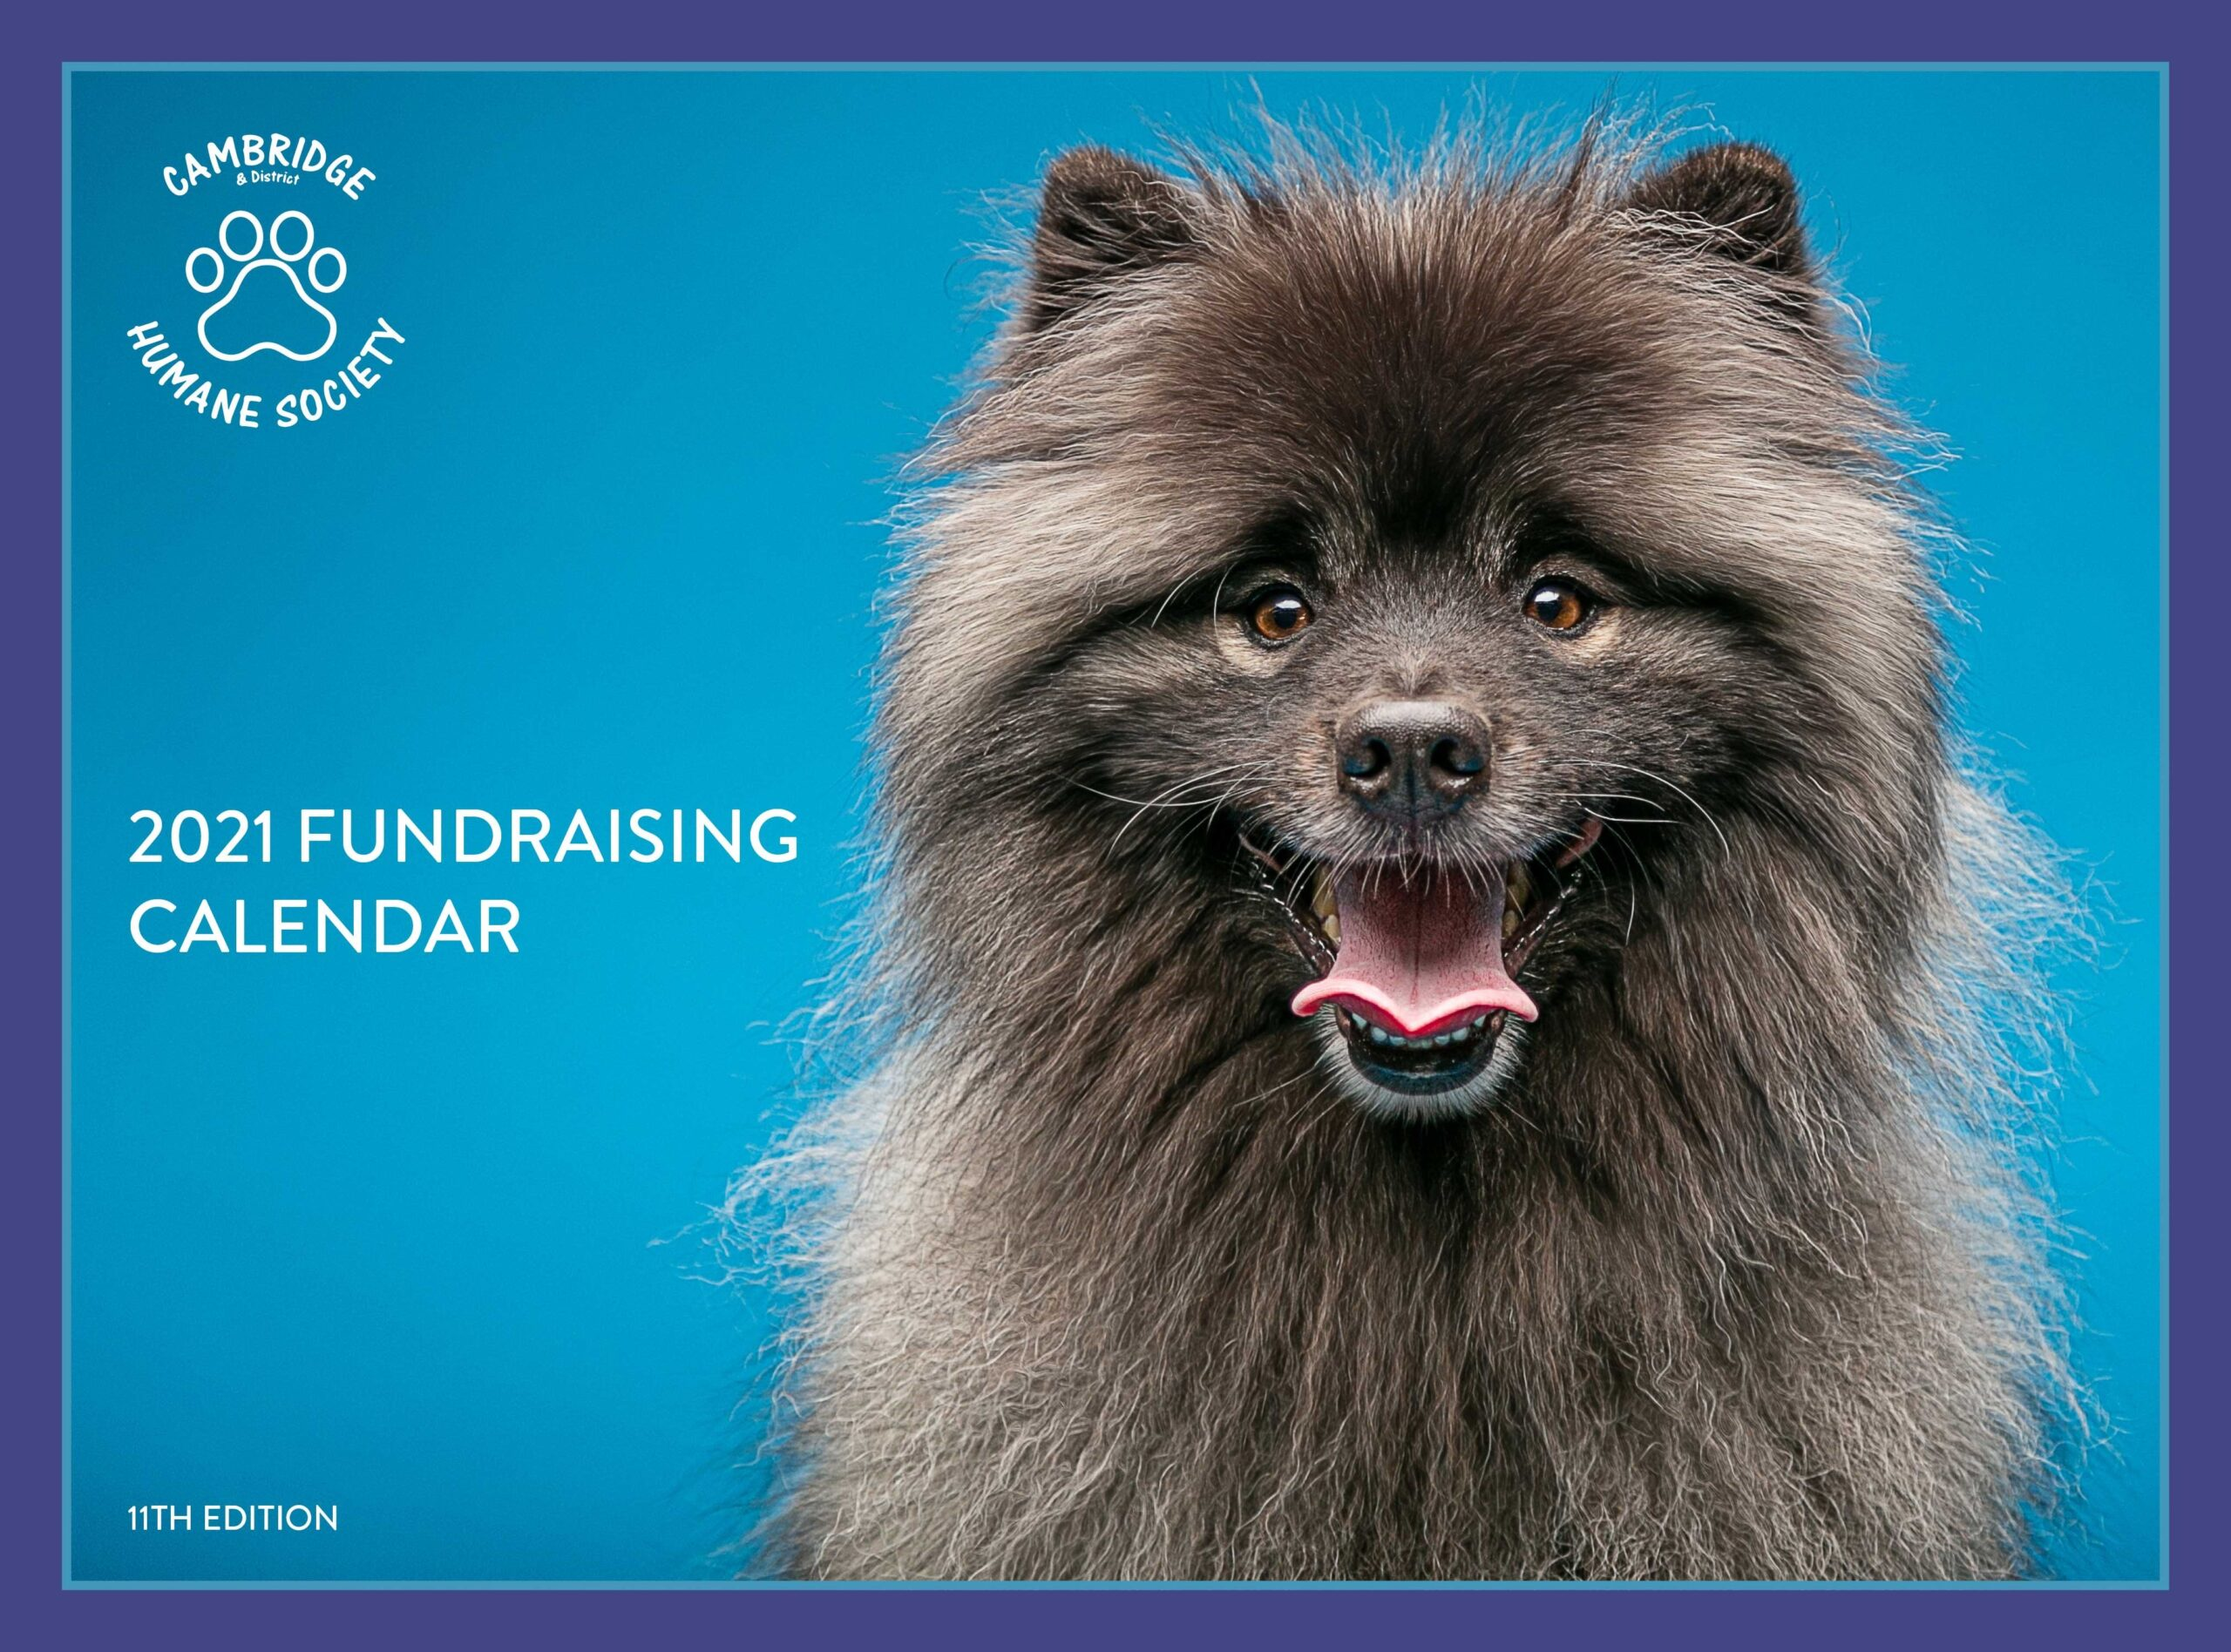 Purchase Your Copy of the Cambridge & District Humane Society 2021 Fundraising Calendar